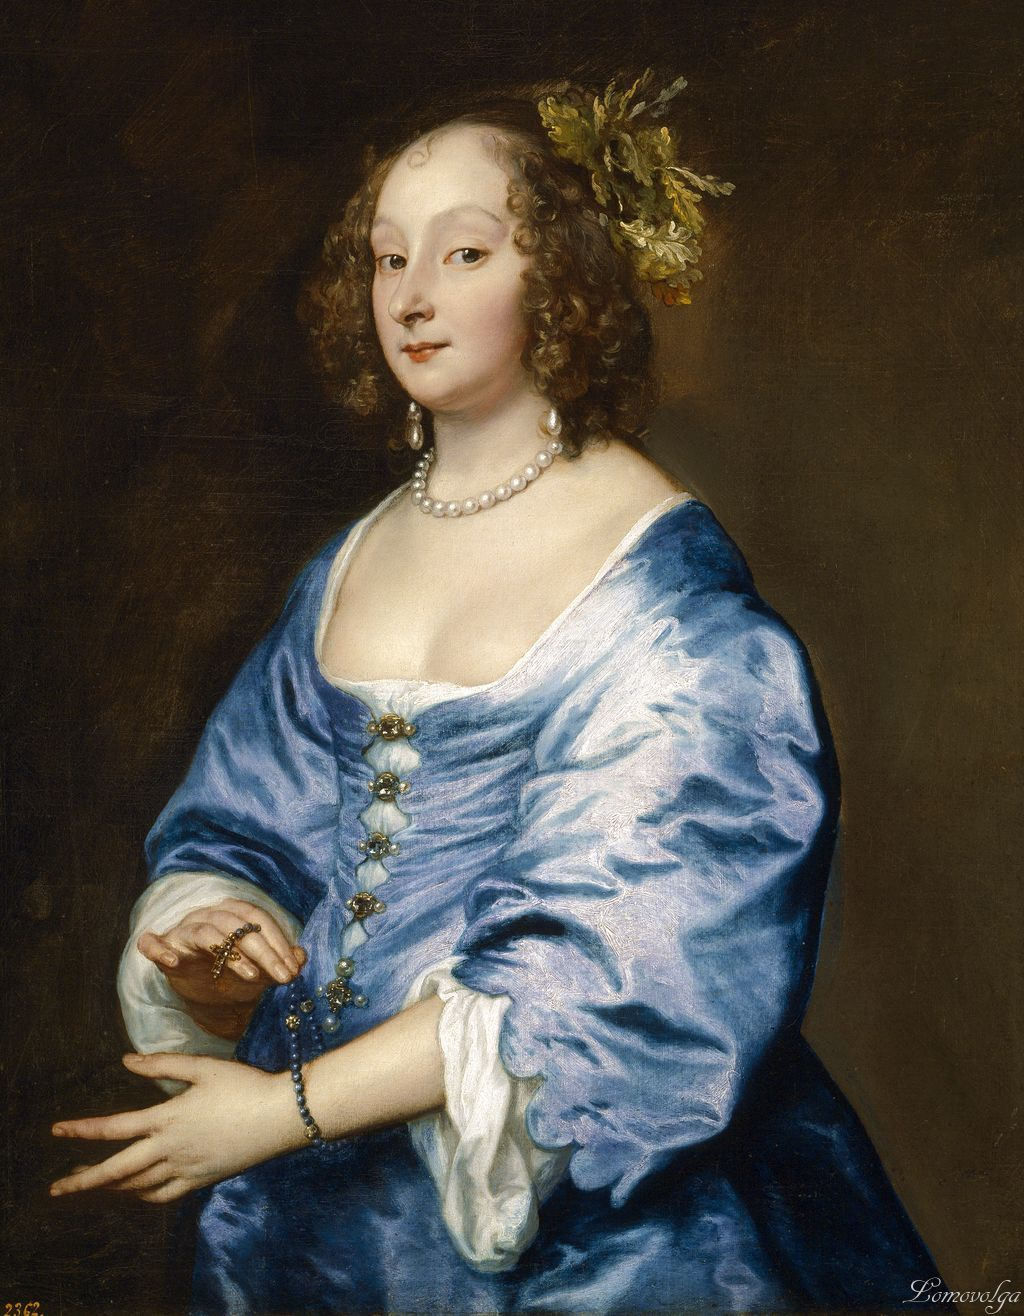 Anthony van Dyck (Flemish painter, 1599–1641) Porträt der Mary Ruthven , Lady van Dyck 1639